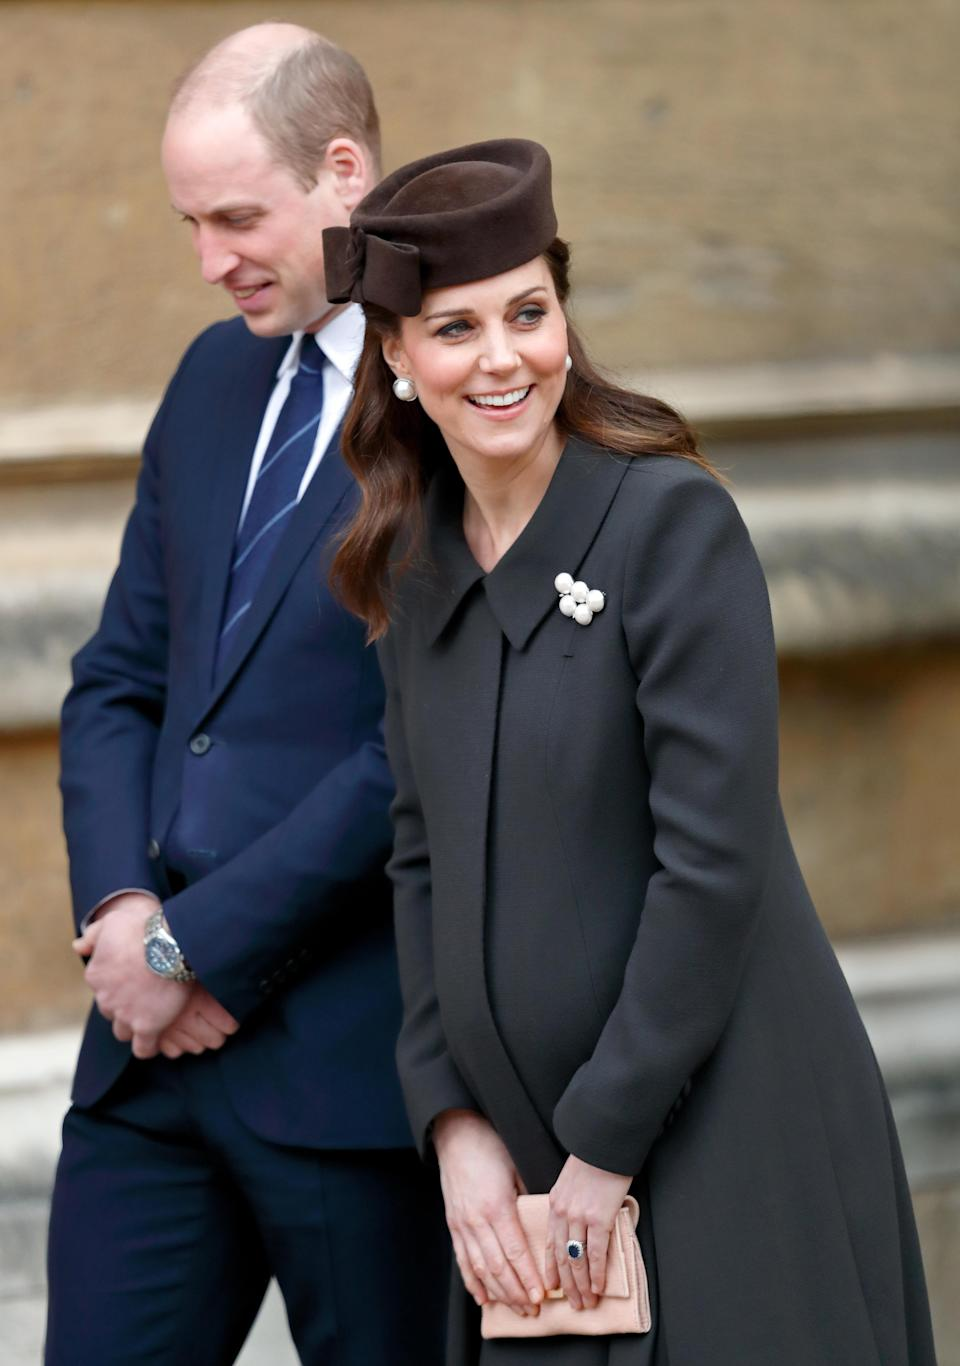 The Duchess of Cambridge made her last public appearance earlier this month [Photo: Getty]